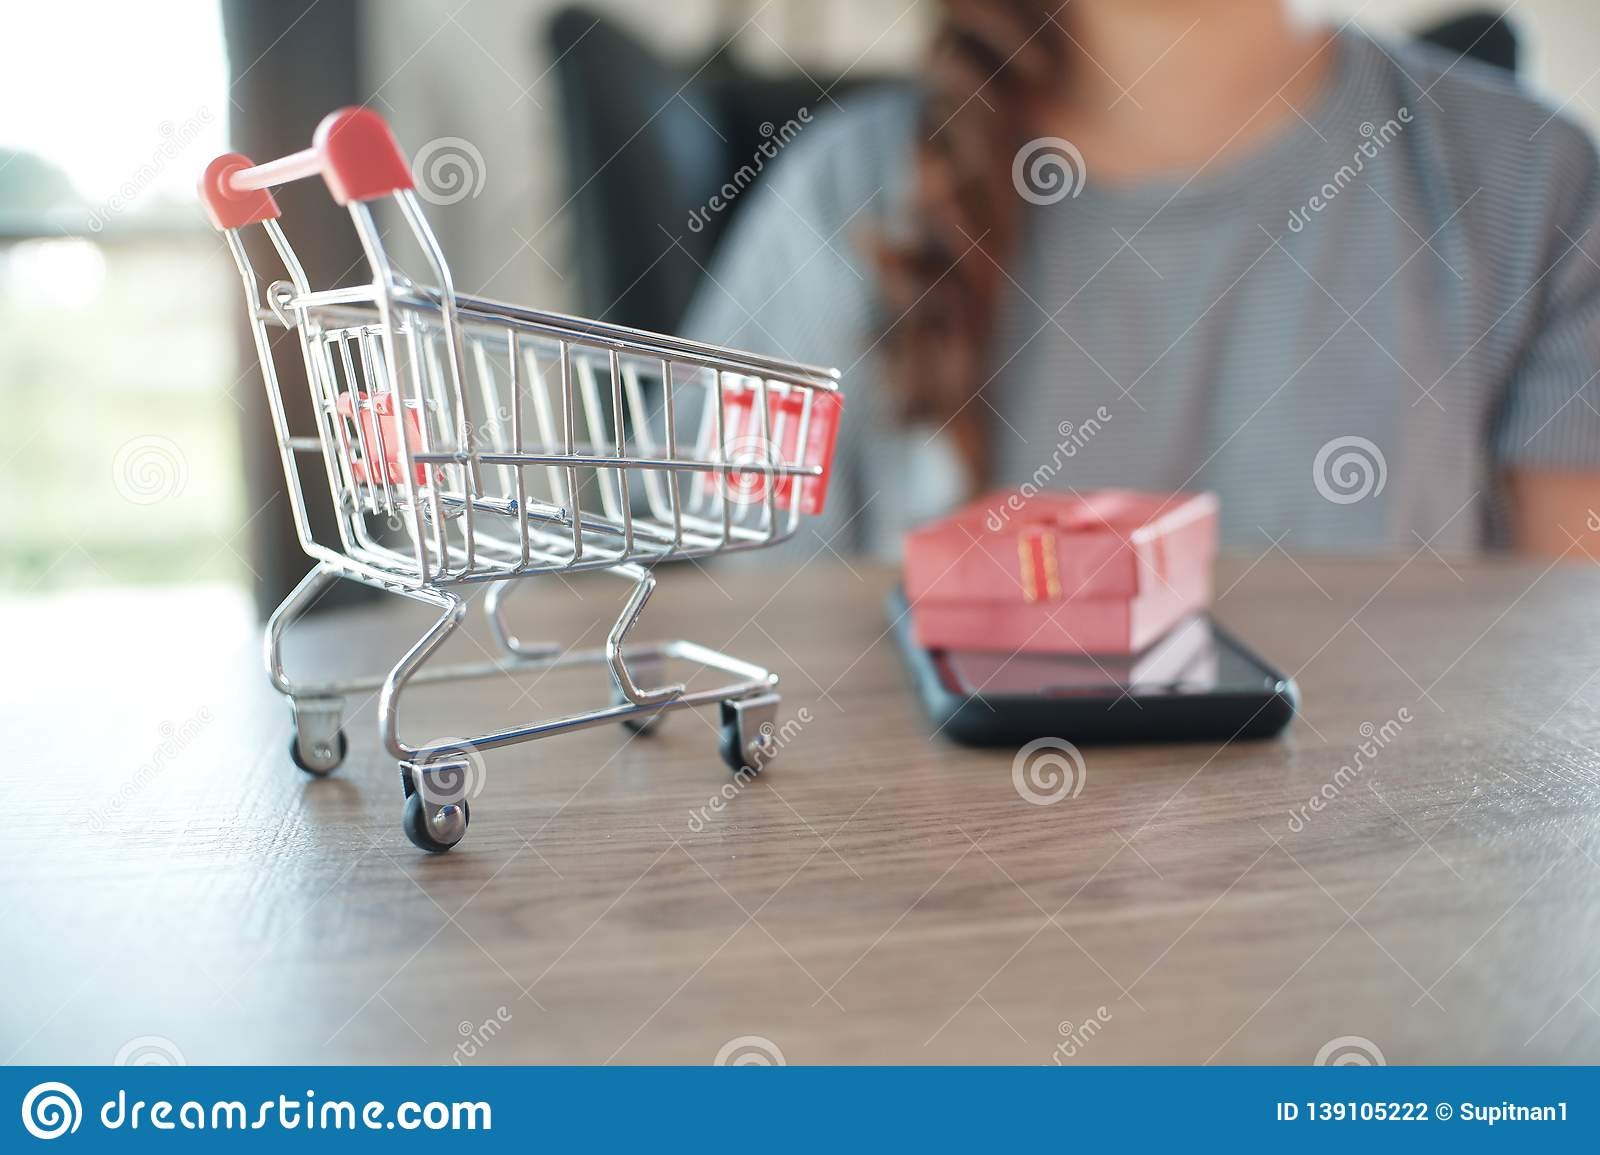 Close up of miniature shopping cart /trolley toy figure. smart phone and red gift box on table for shopping and e-commerce concept